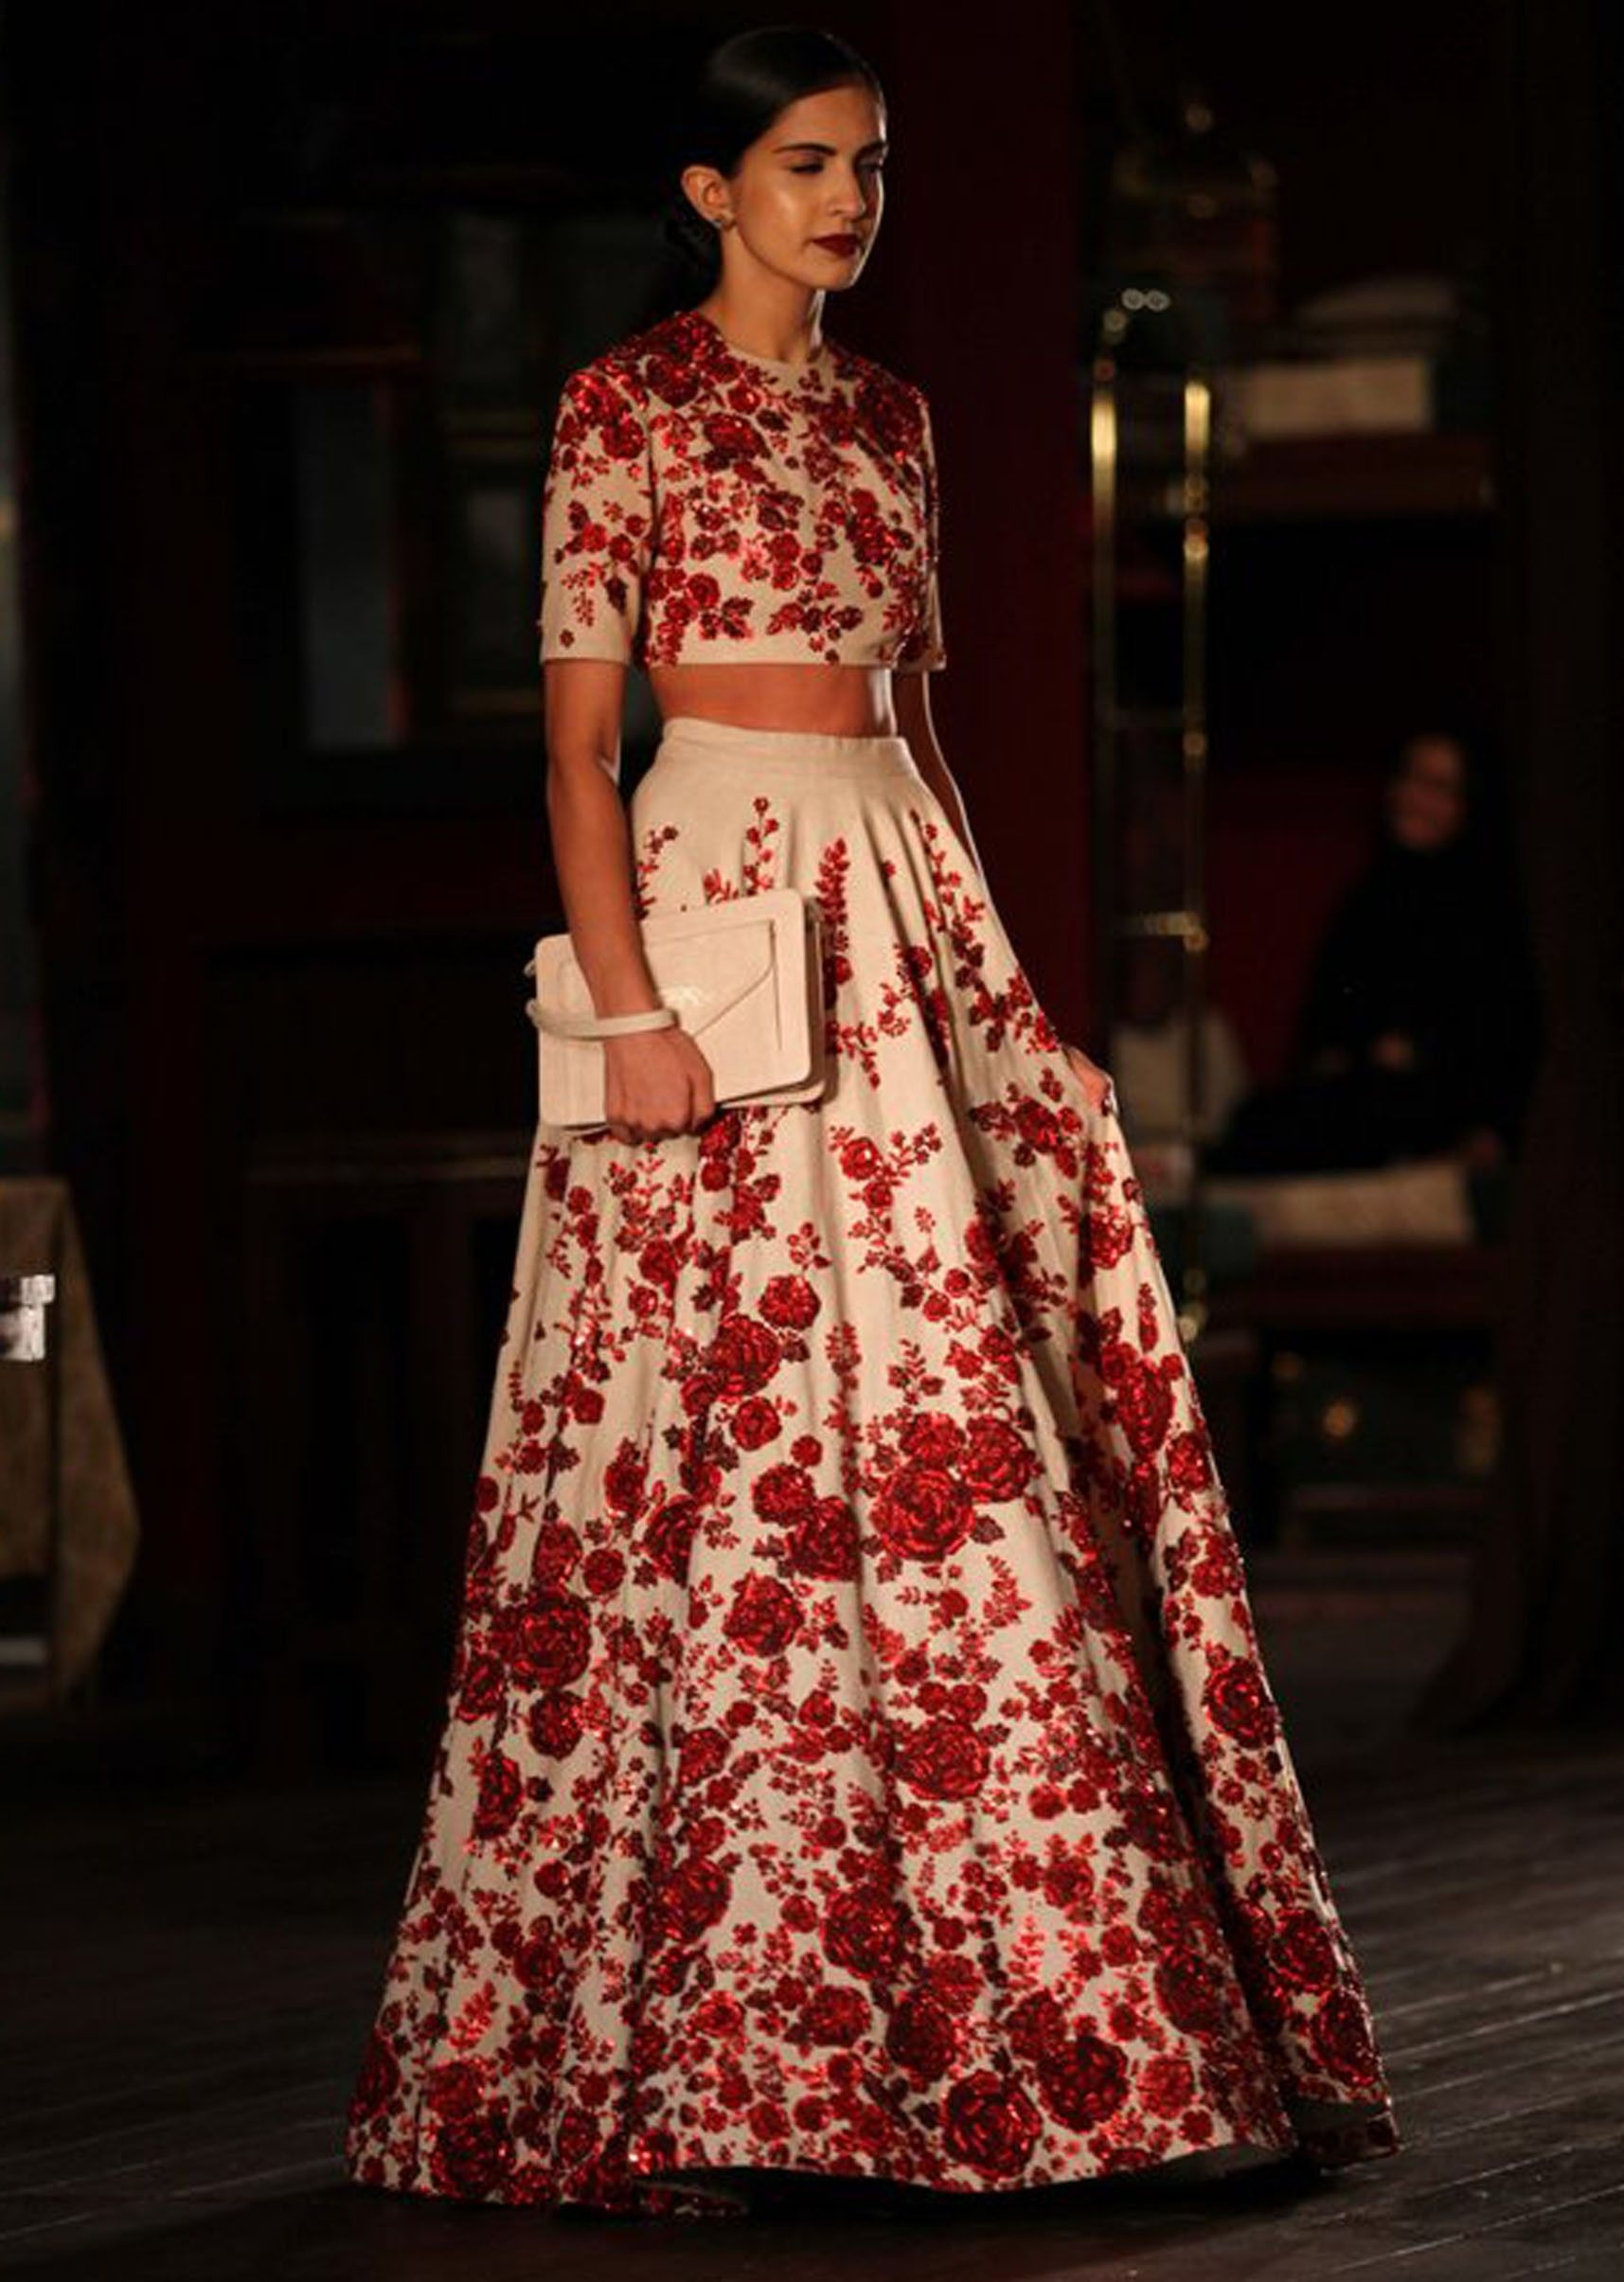 Model walking the ramp with red and white floral gown for for Indian women wedding dress